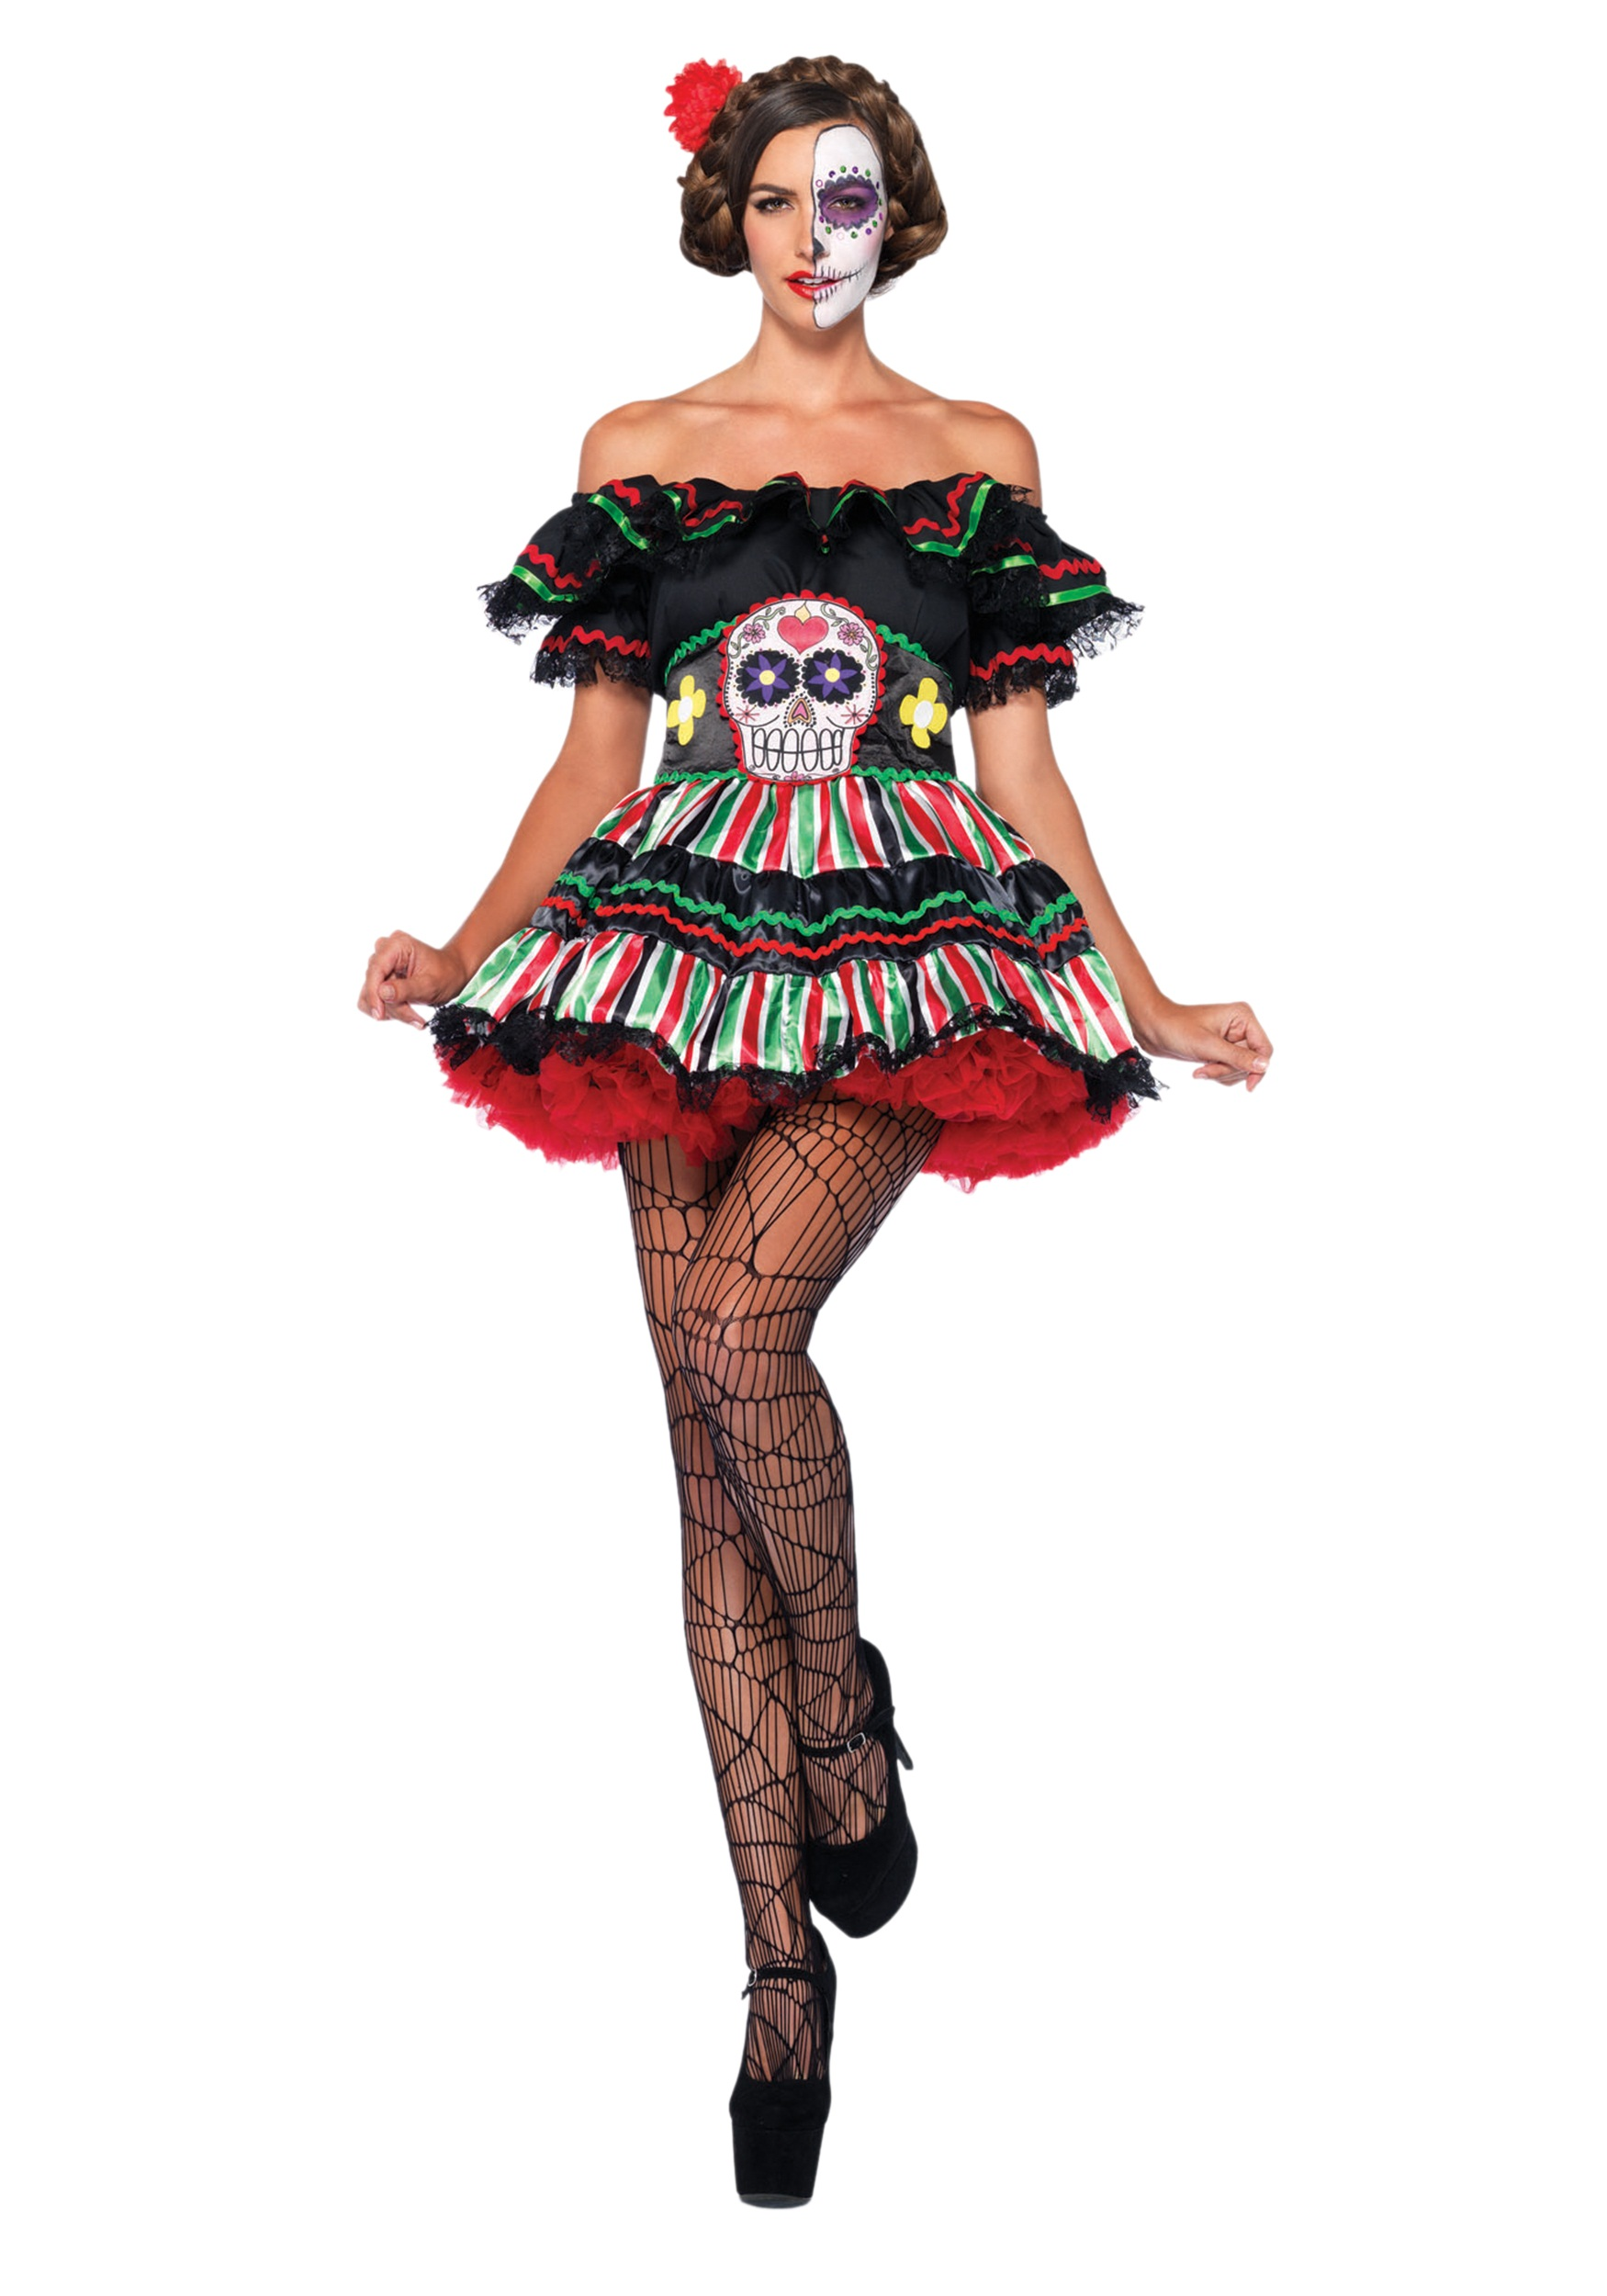 Day of the dead doll costume for adults